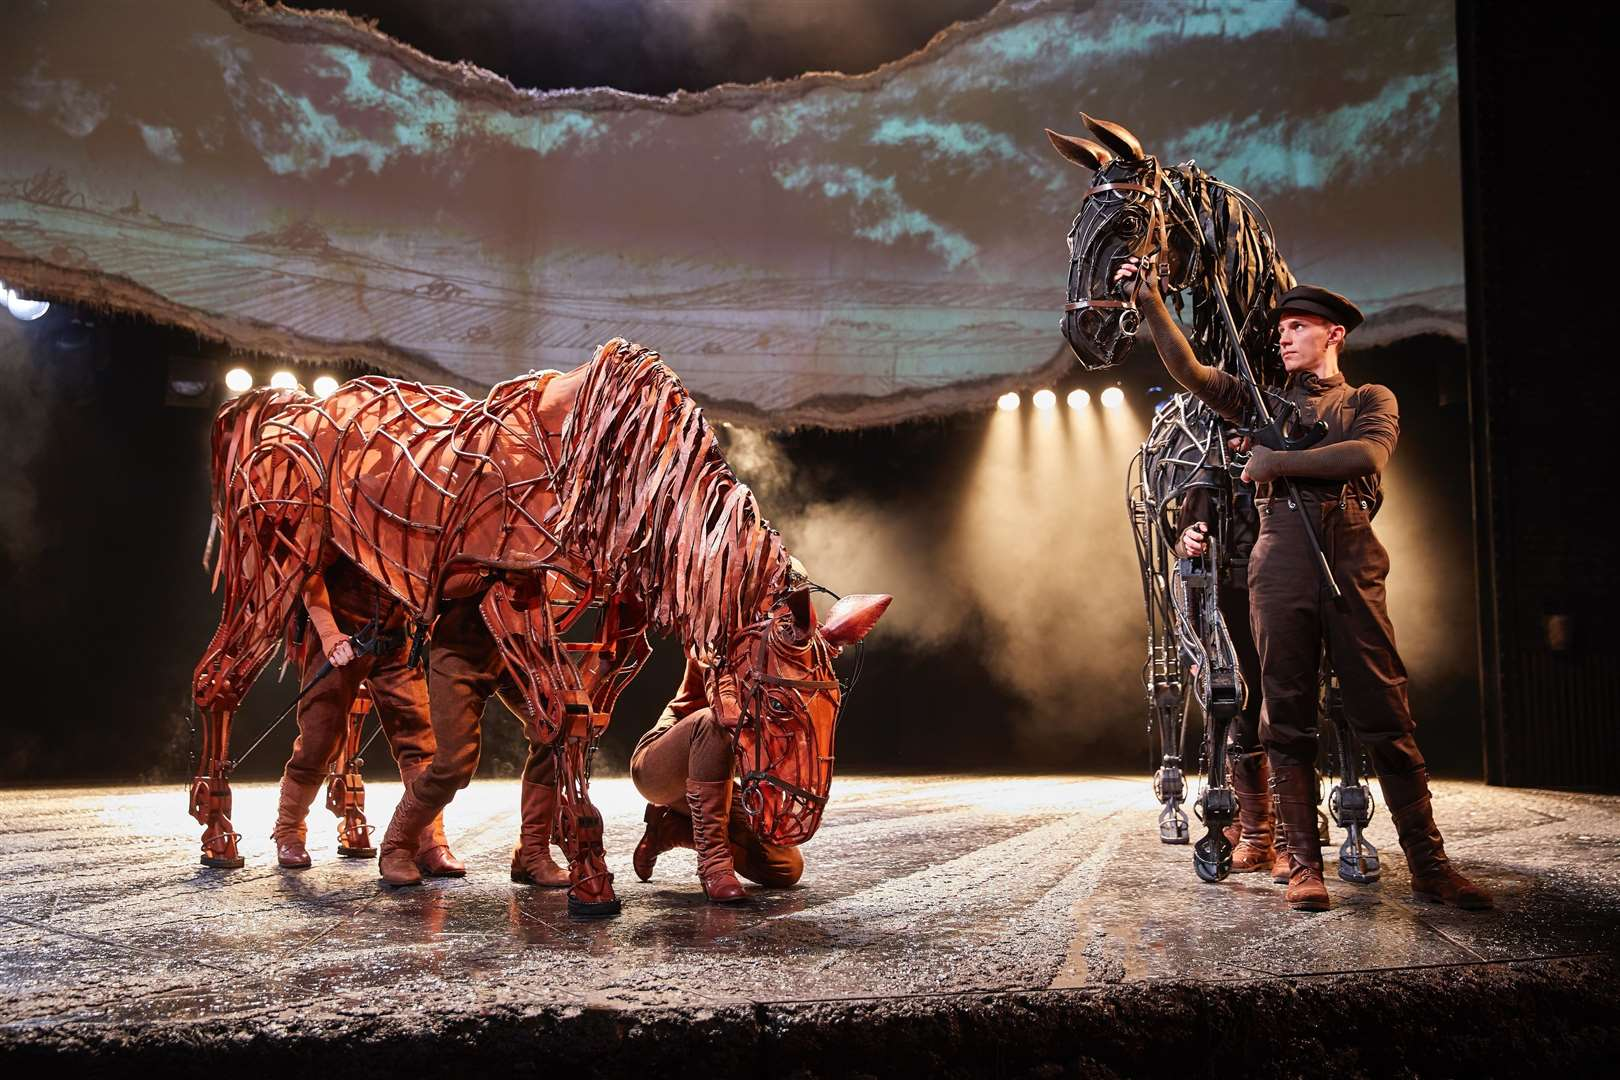 The acclaimed National Theatre production of War Horse is based on the much-loved book by Michael Morpurgo about a horse sold to the British Cavalry and his soldier owner's quest to find him